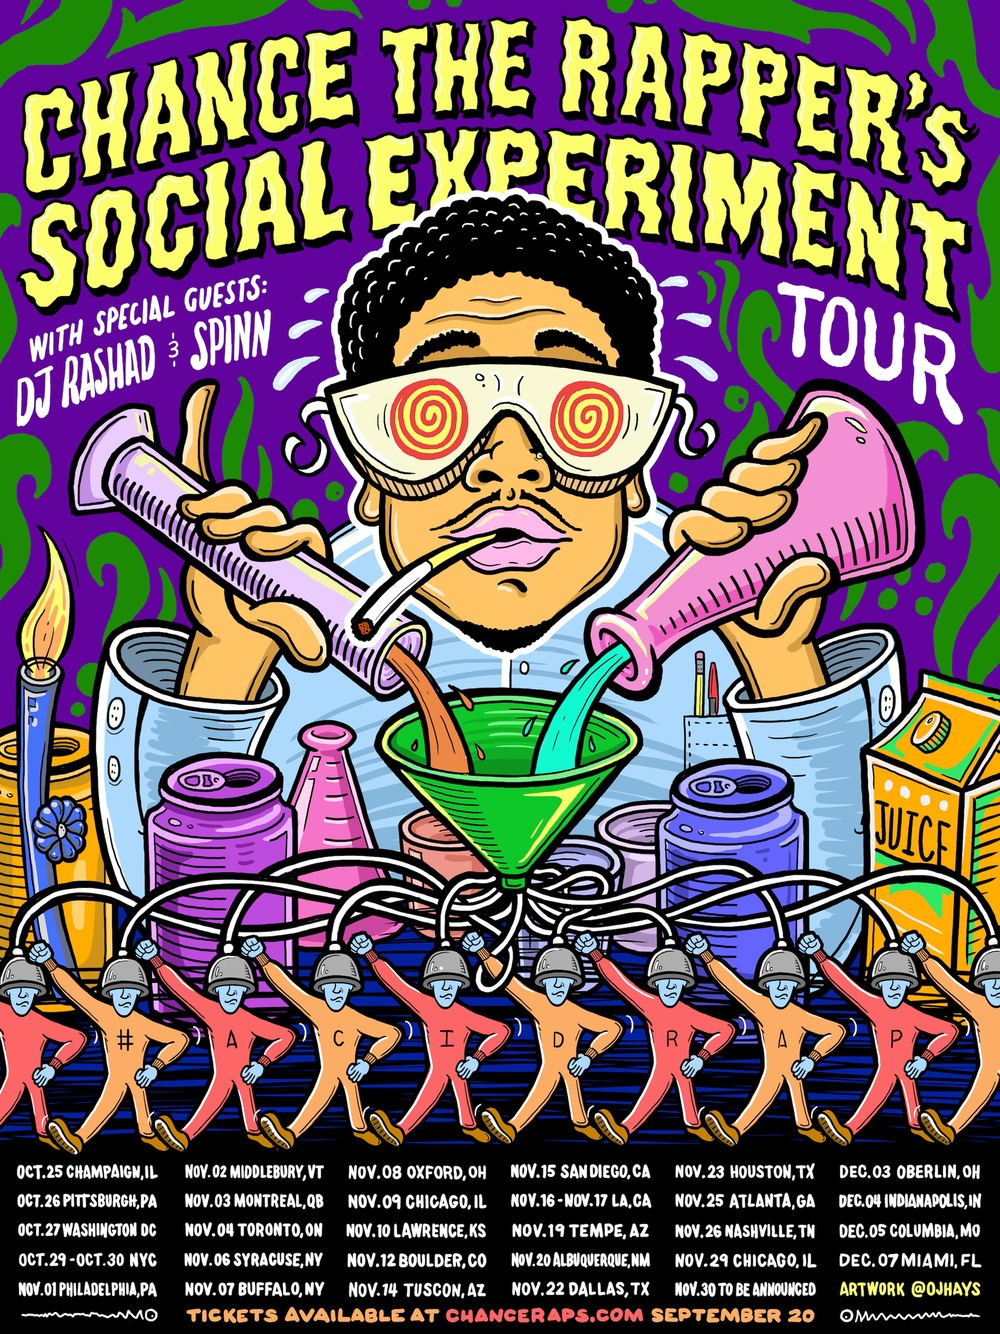 Chance The Rappers Social Experiment Tour Poster